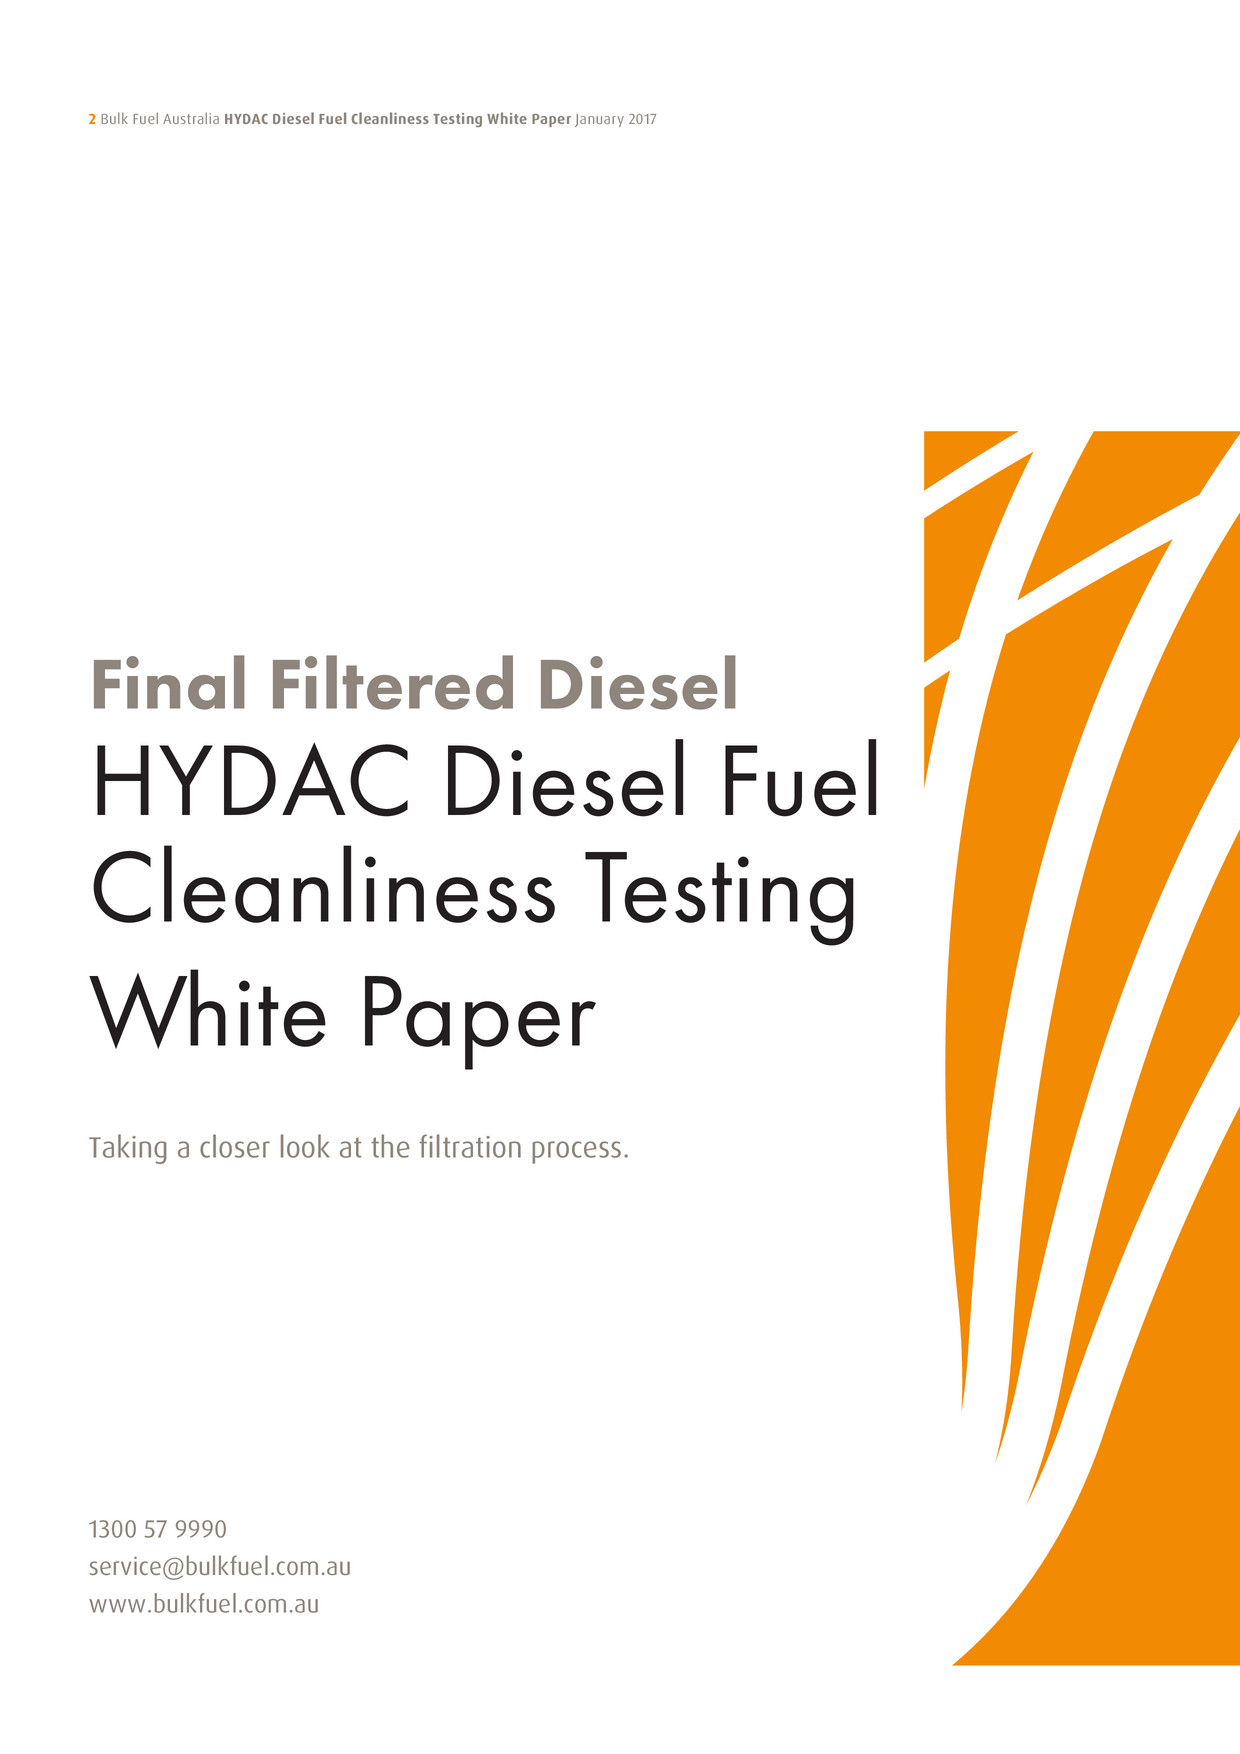 HYDAC Diesel Fuel Cleanliness Testing White Paper-2017